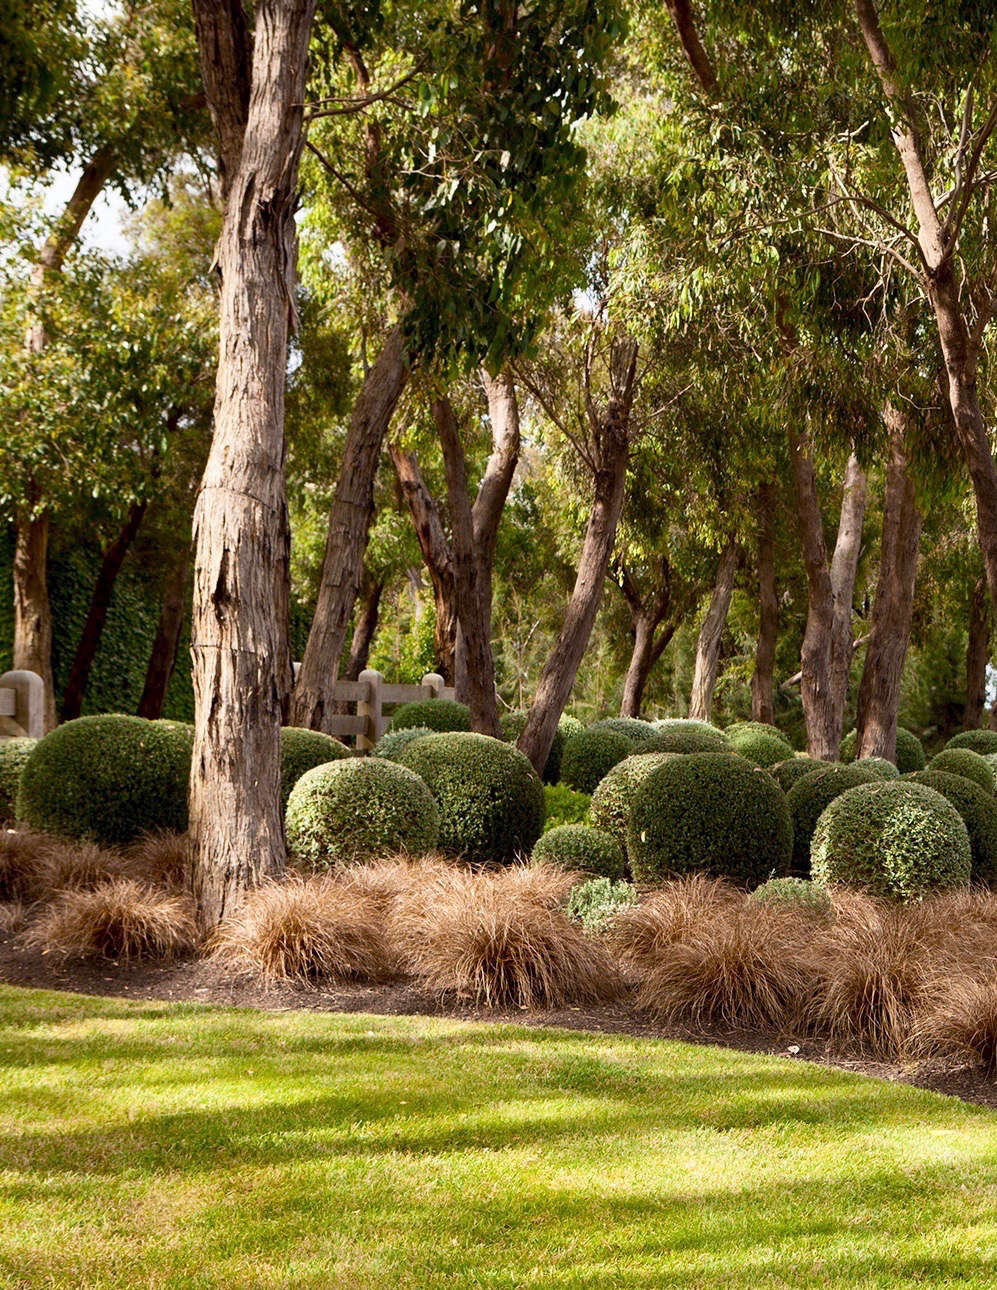 Shrubs including Westringia and silver-leafed germander (Teucrium fruticans) are clipped into round globe shapes.